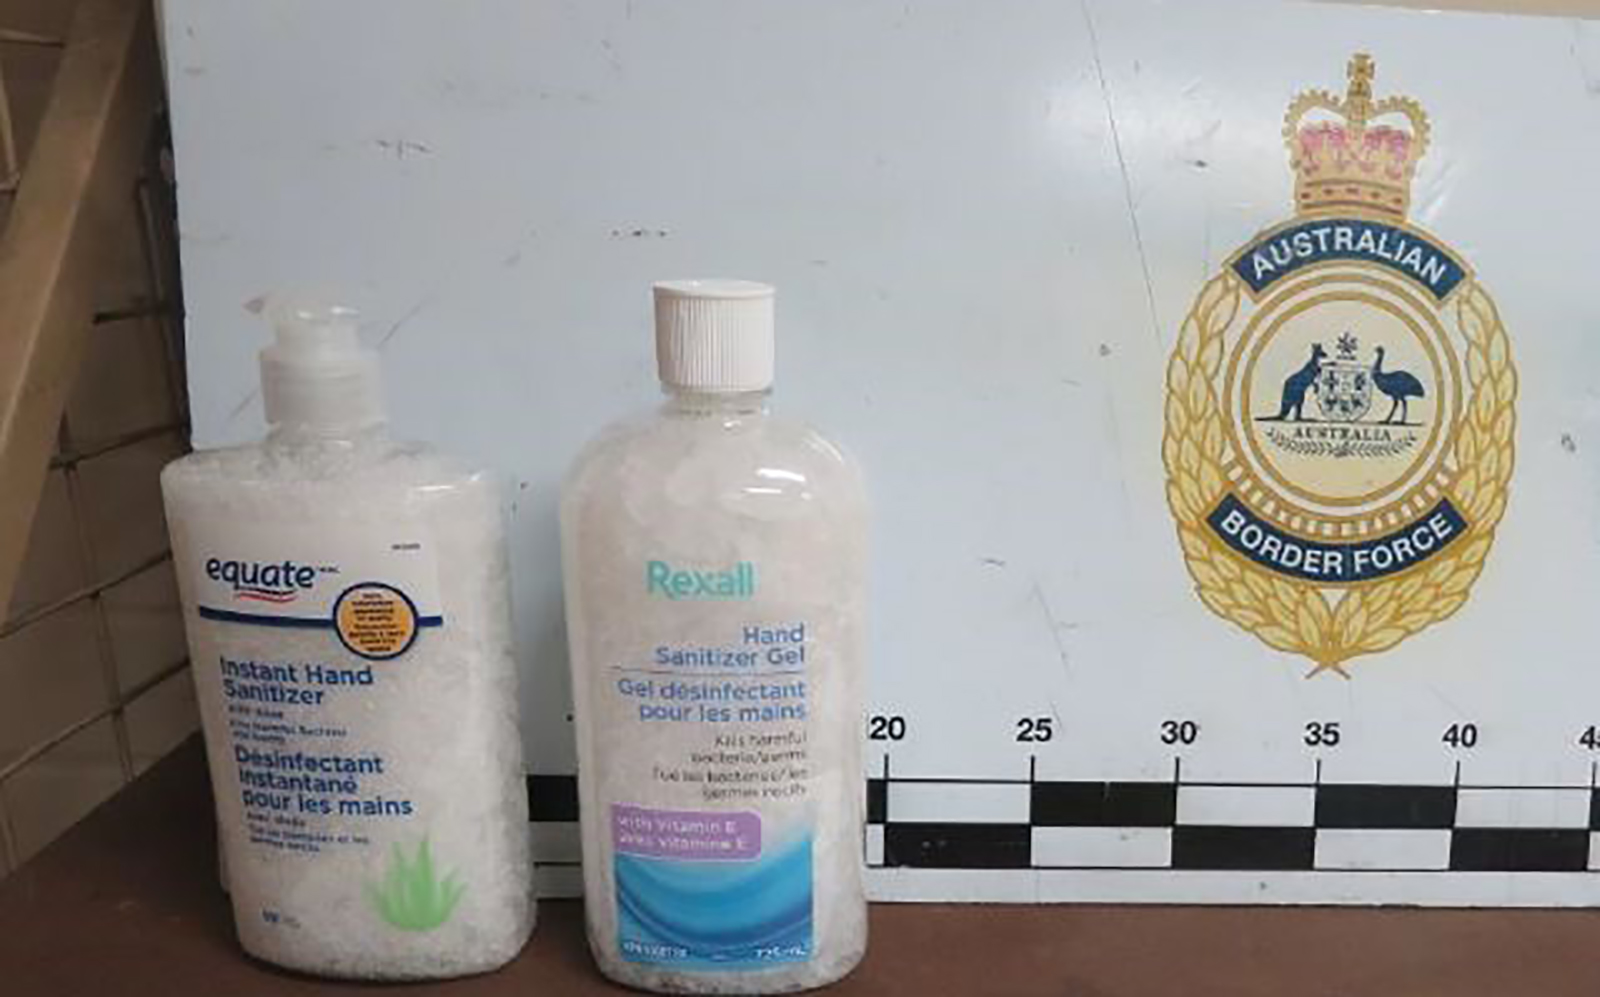 Drug smugglers used bottles of hand sanitizer to conceal meth shipments